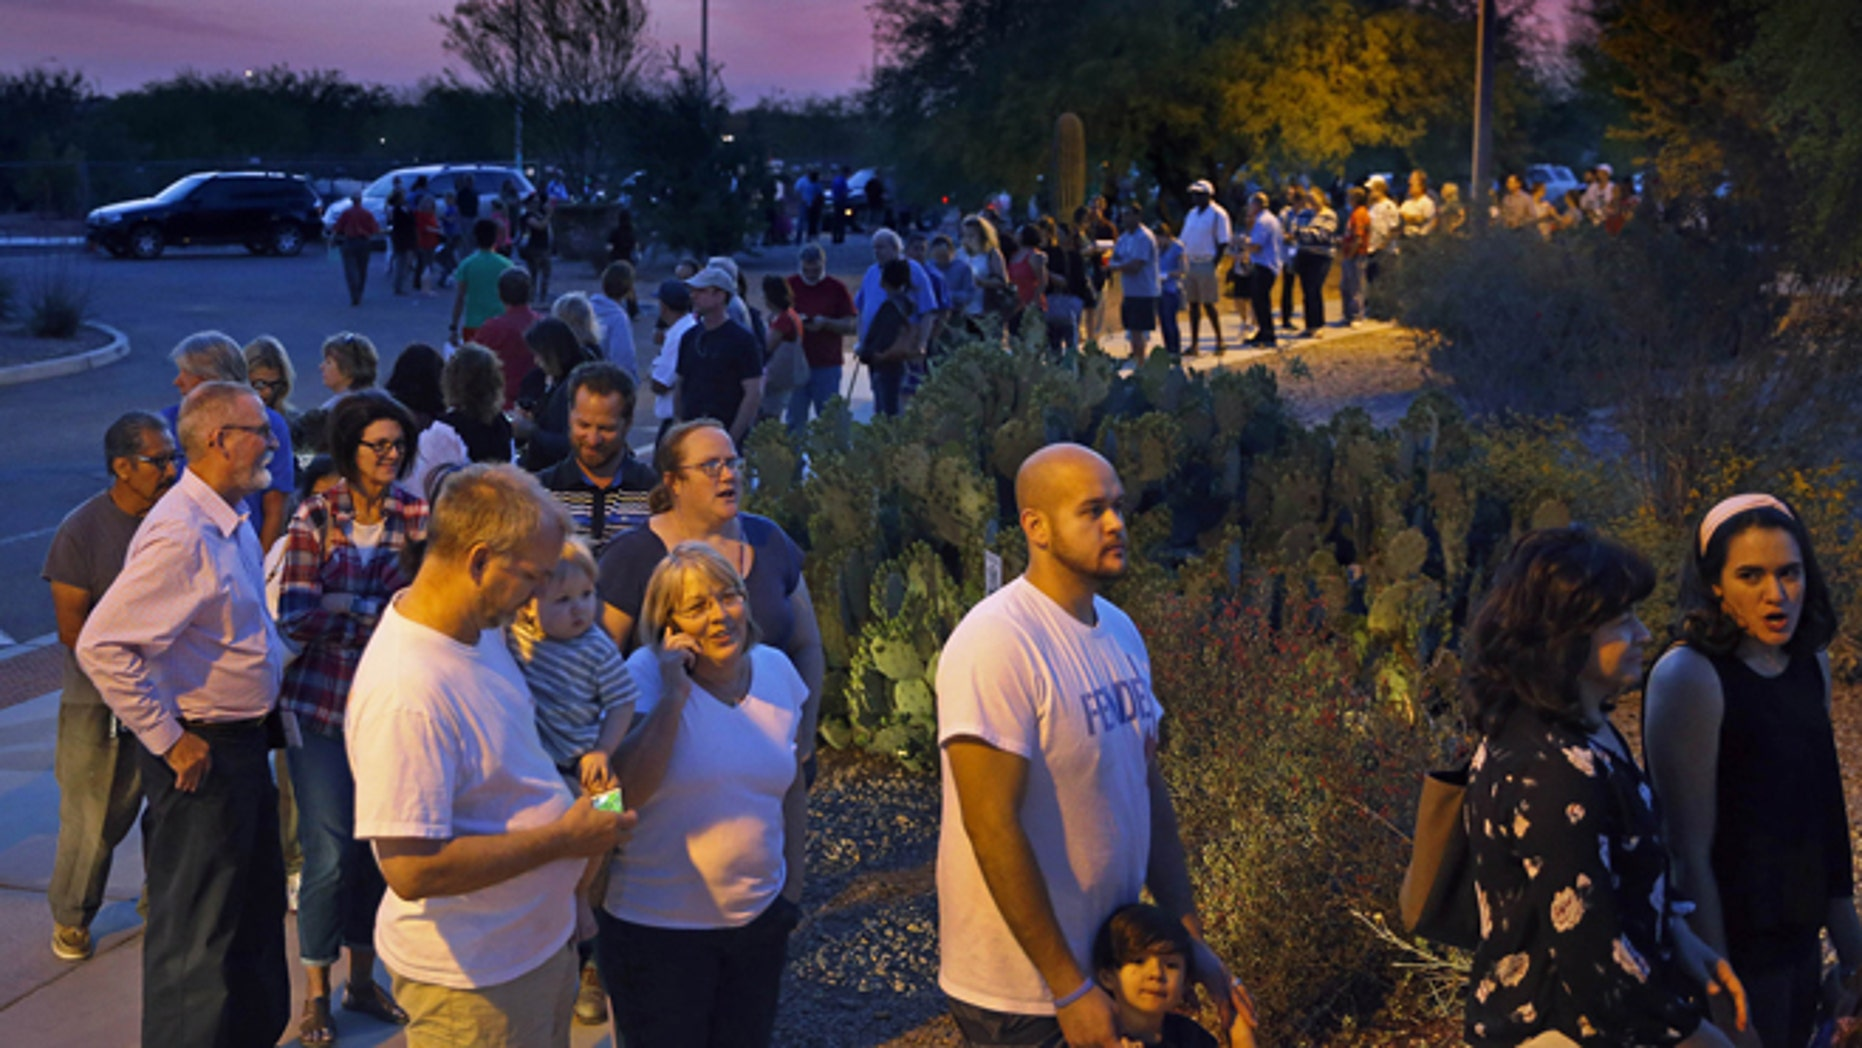 People wait in line to vote in the primary at the Environmental Education Center, Tuesday, March 22, 2016, in Chandler, Ariz. Residents in metro Phoenix have been bristling for years over a perception that state leaders want to make it harder for them to vote, and the mess at the polls Tuesday only heightened the frustration.  (David Kadlubowski/The Arizona Republic via AP)